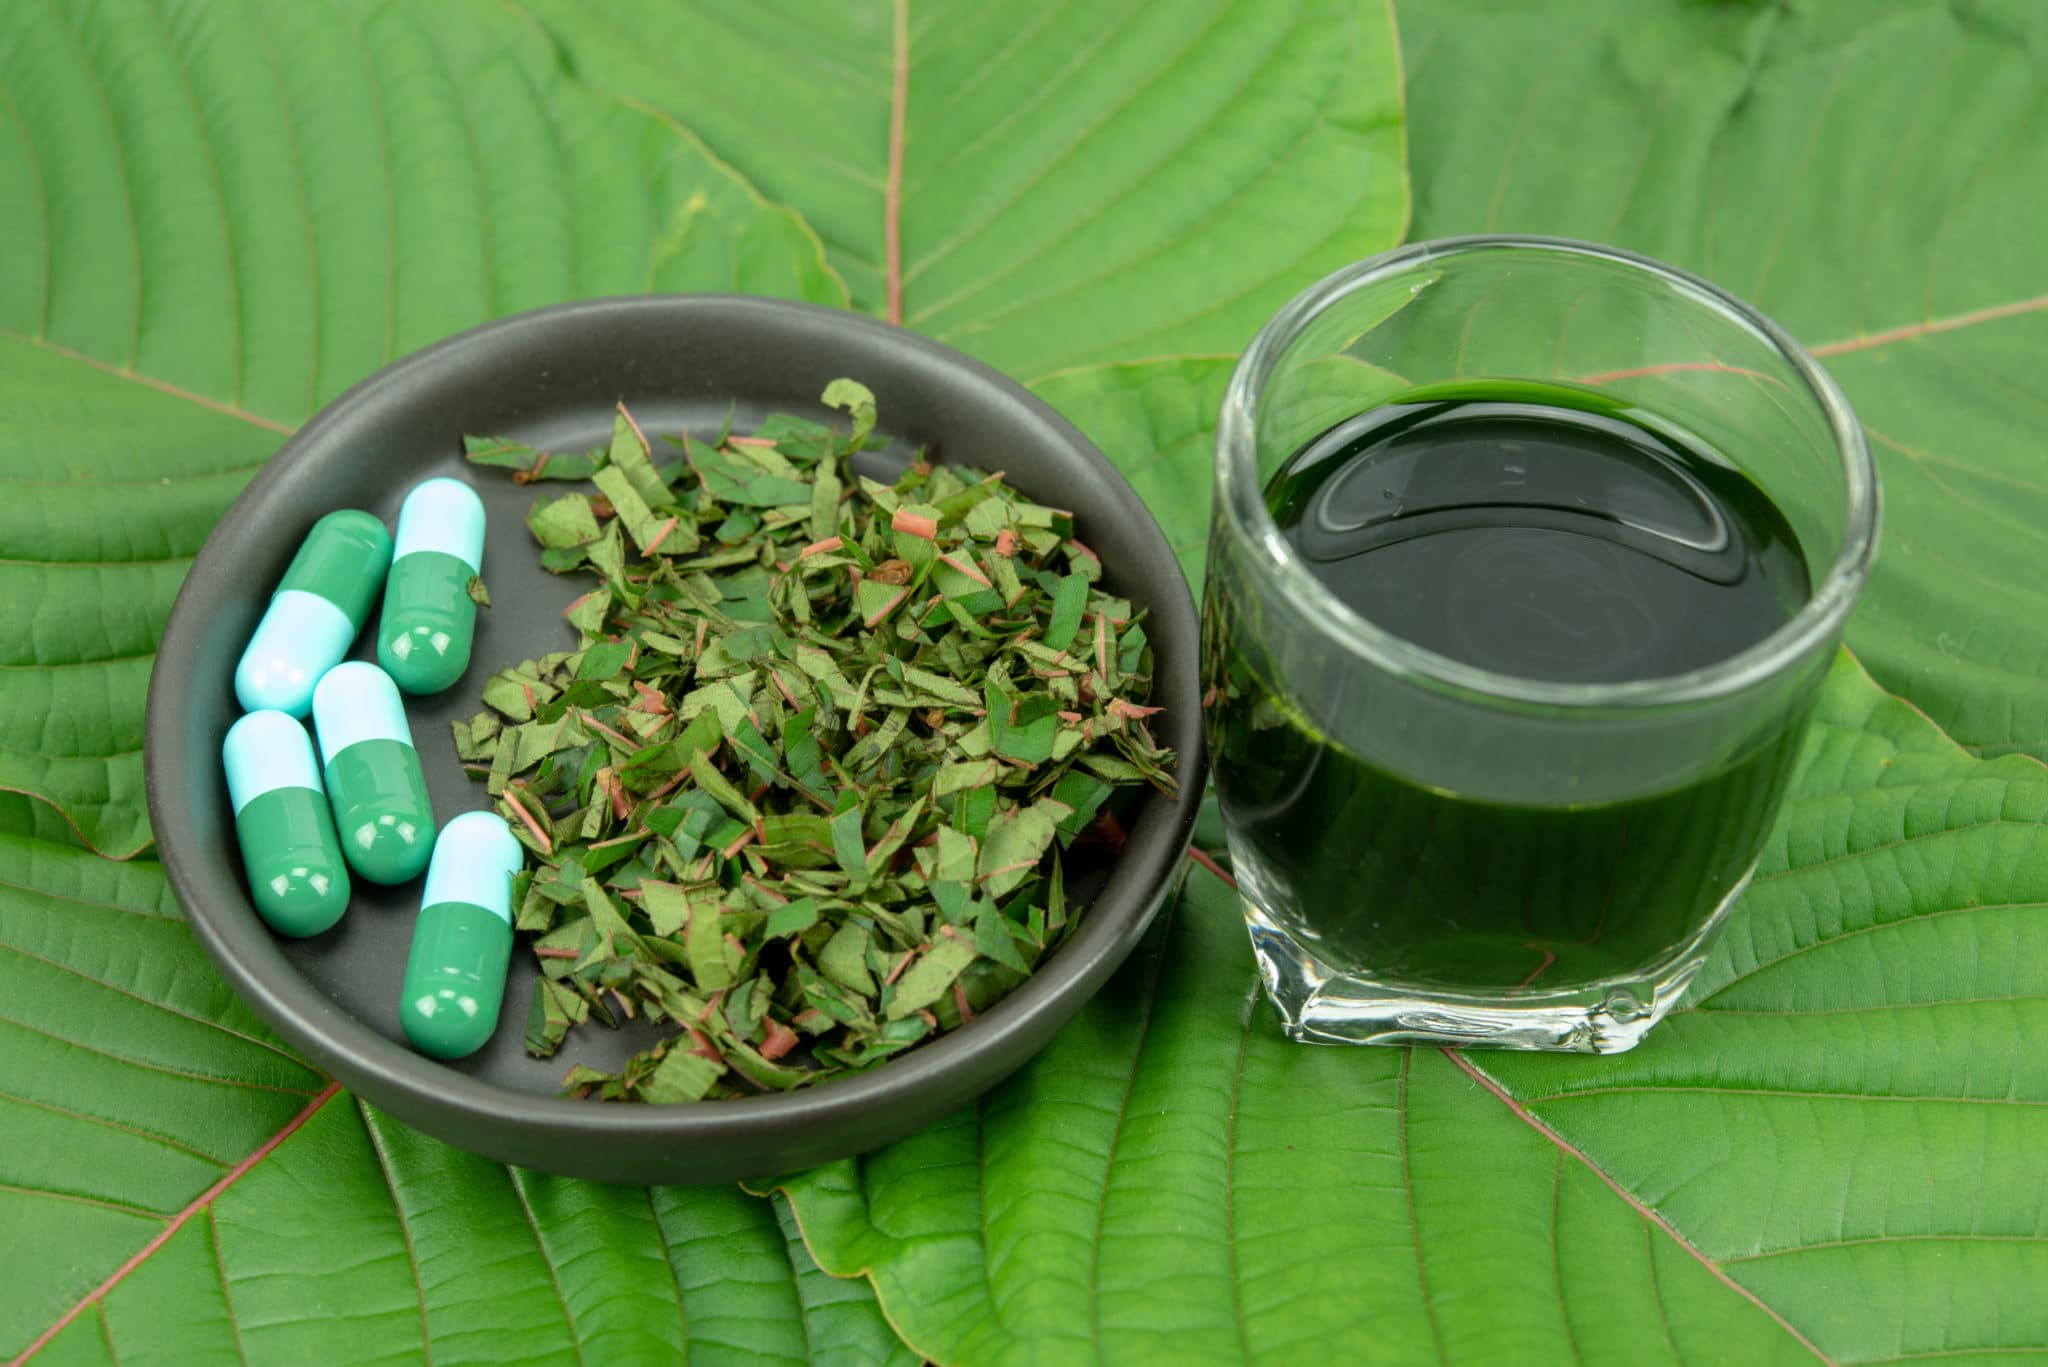 CDC Report: Clear Link Between Kratom and Overdose Deaths